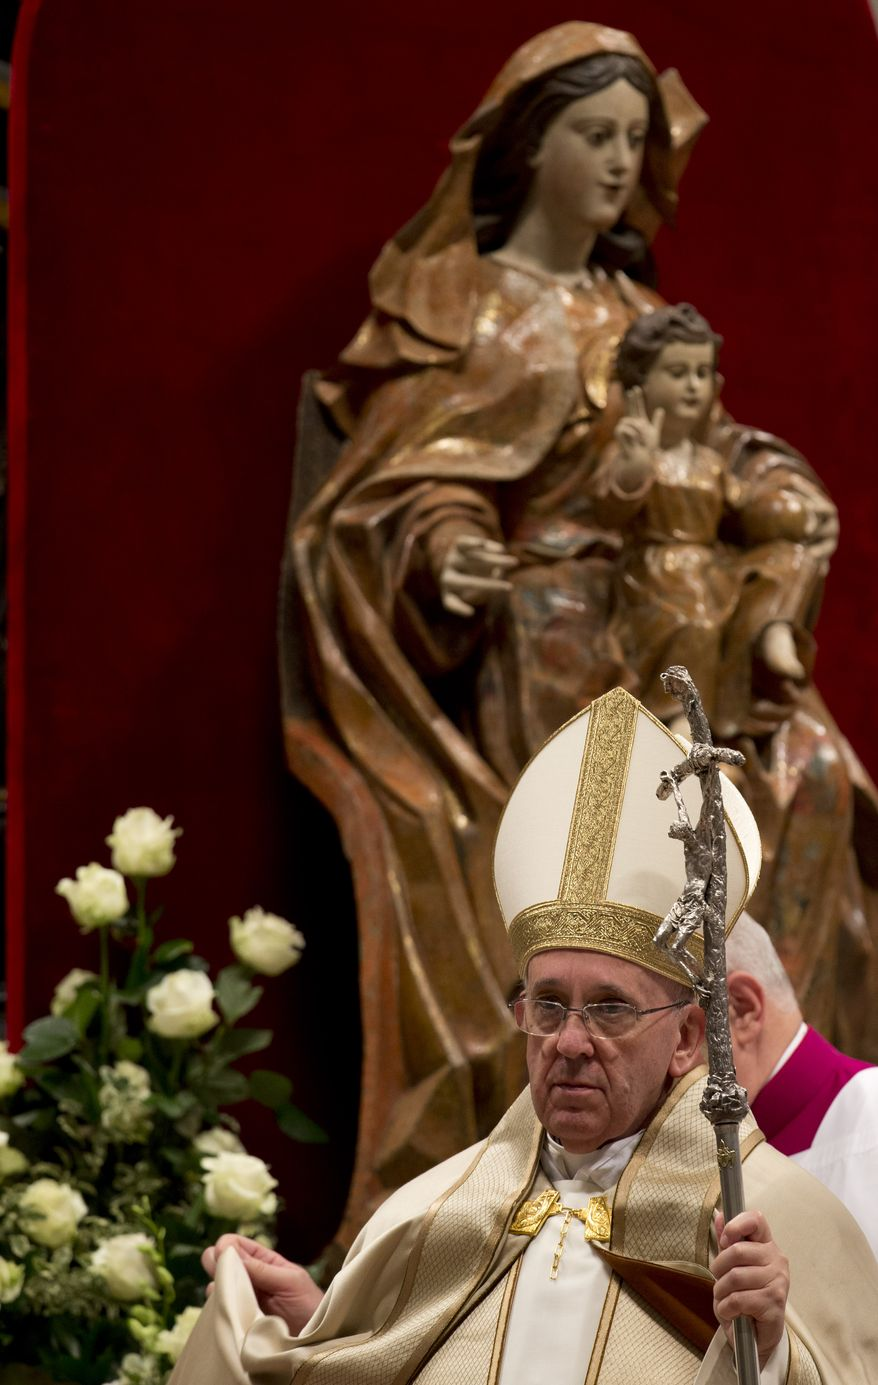 Pope Francis leaves St. Peter's Basilica at the Vatican to celebrate the rite of acceptance and meeting with the catechumens, Saturday, Nov. 23, 2013. (AP Photo/Andrew Medichini)